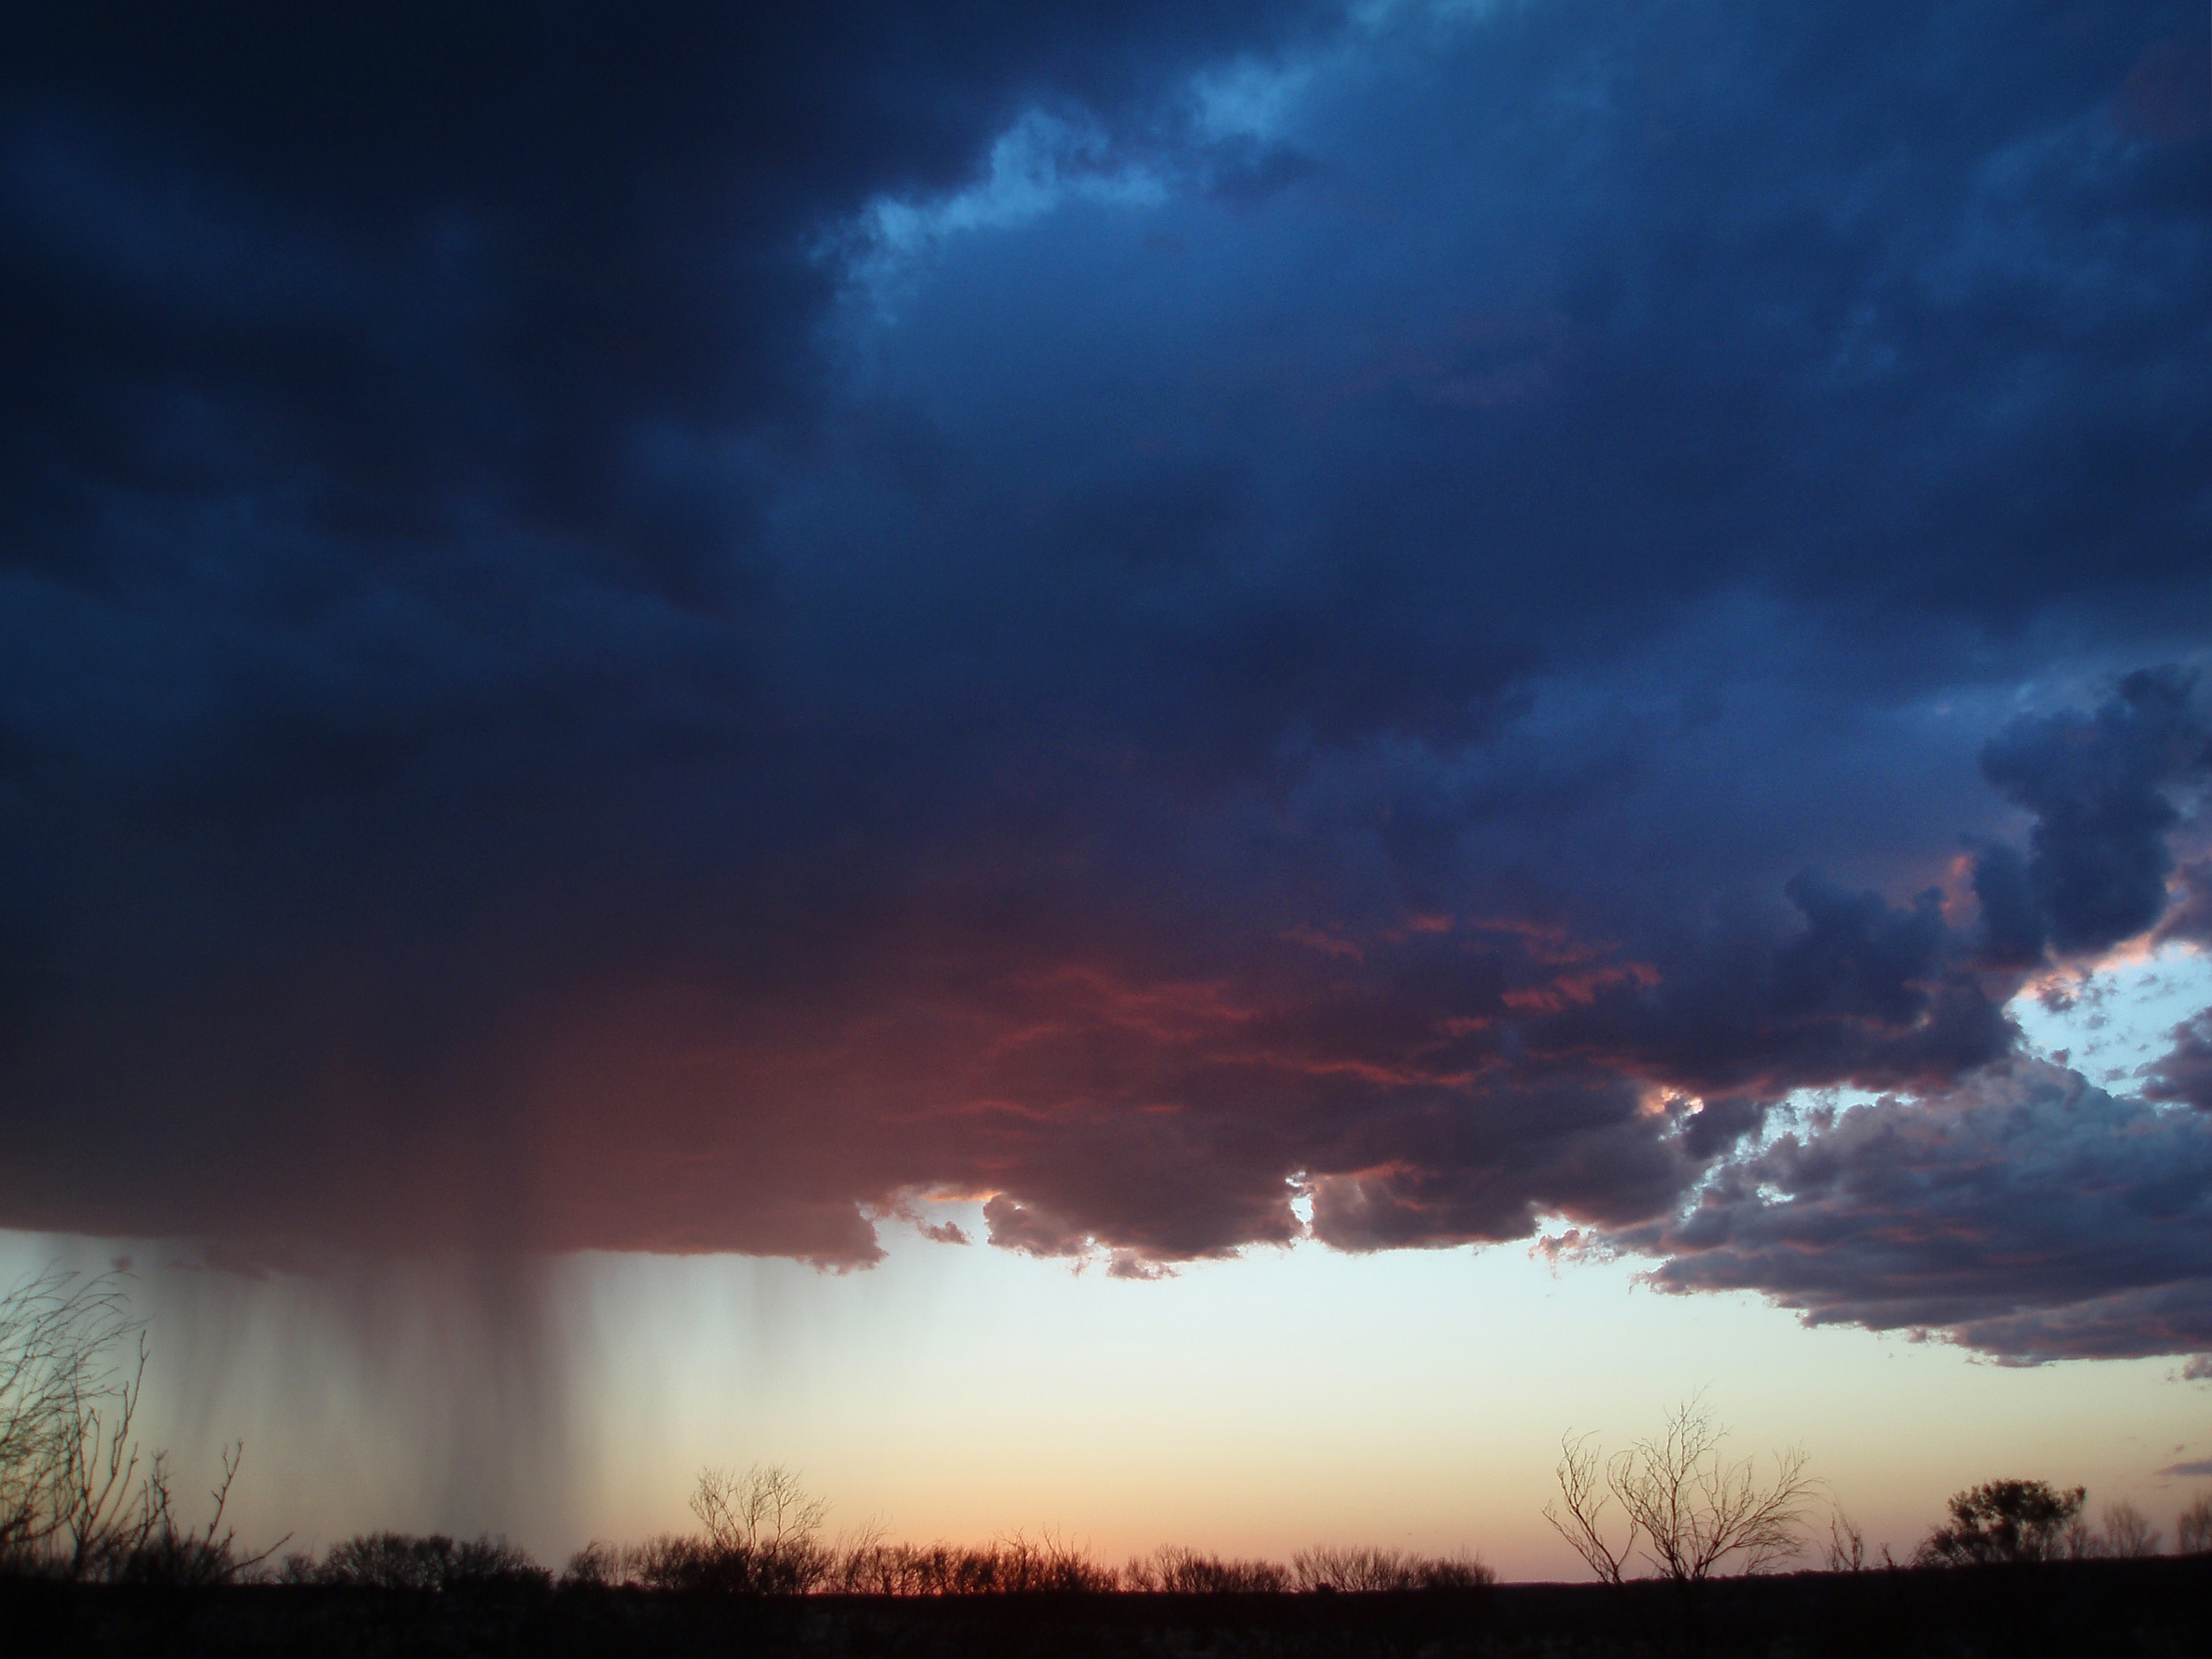 a heavy dark storm cloud dropping rain onto the desert floor at sunset